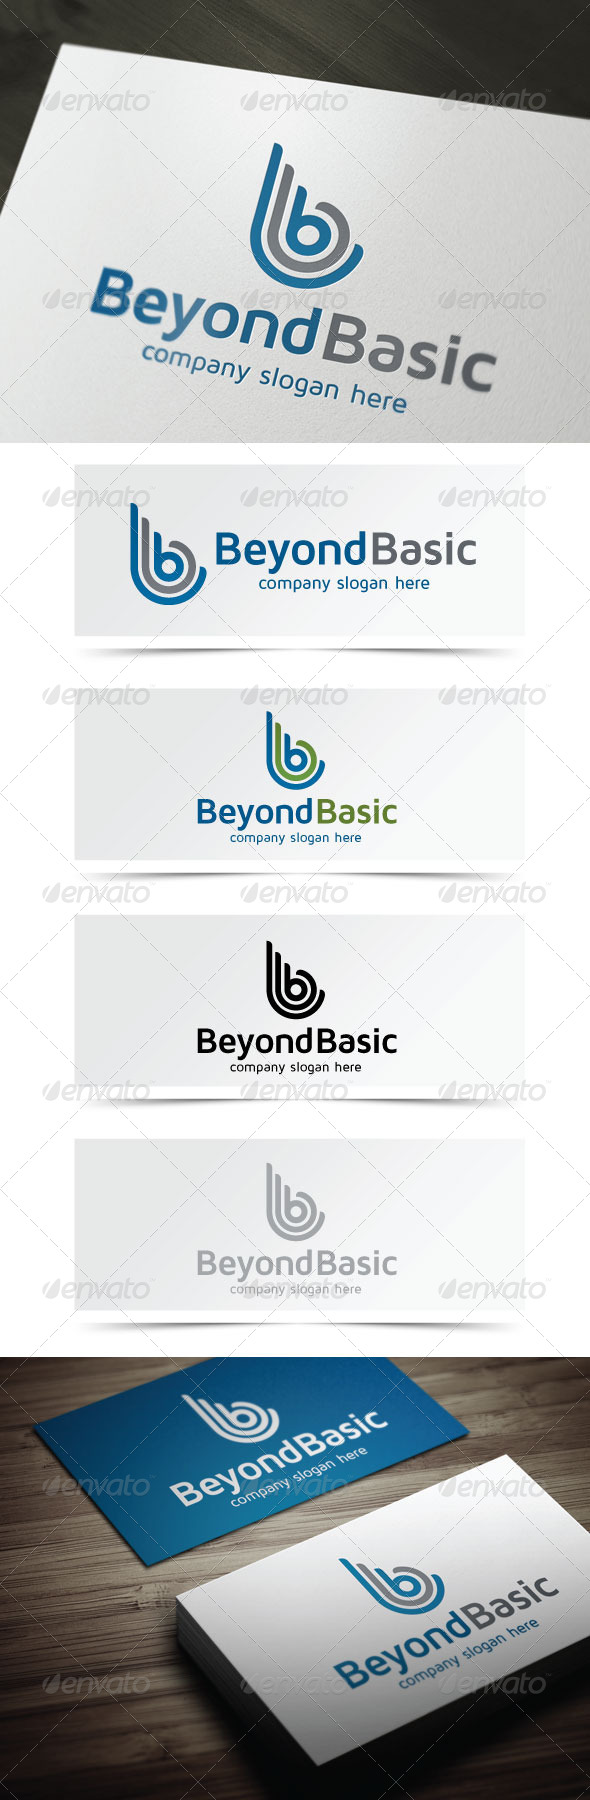 GraphicRiver Beyond Basic 5404397